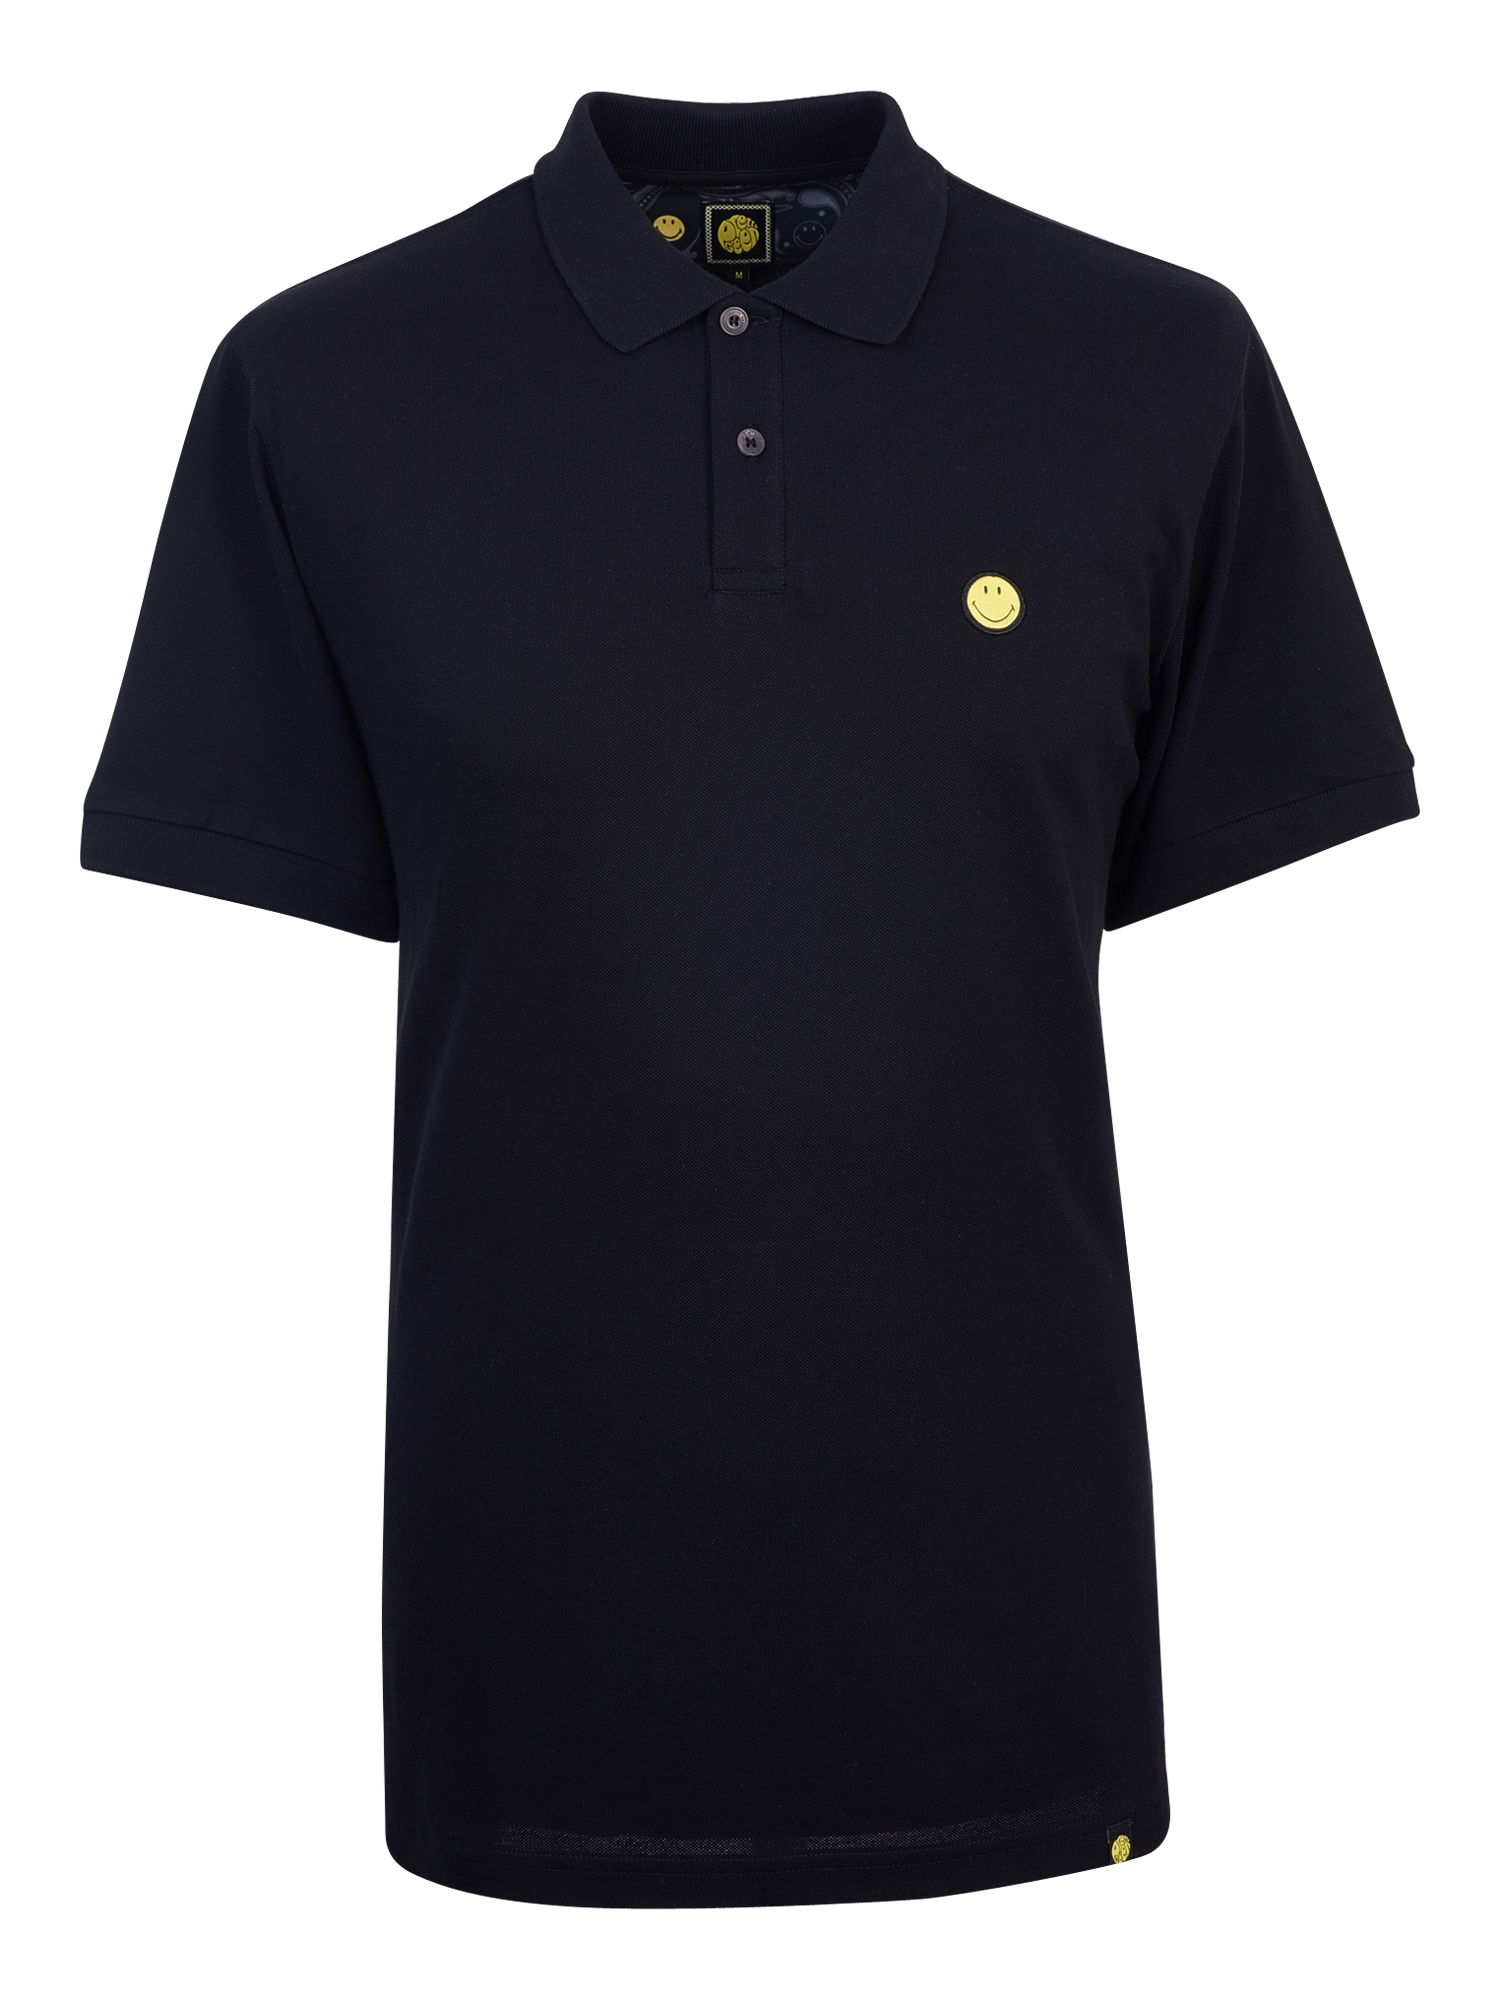 Men's Pretty Green Smiley Badge Polo Shirt, Black